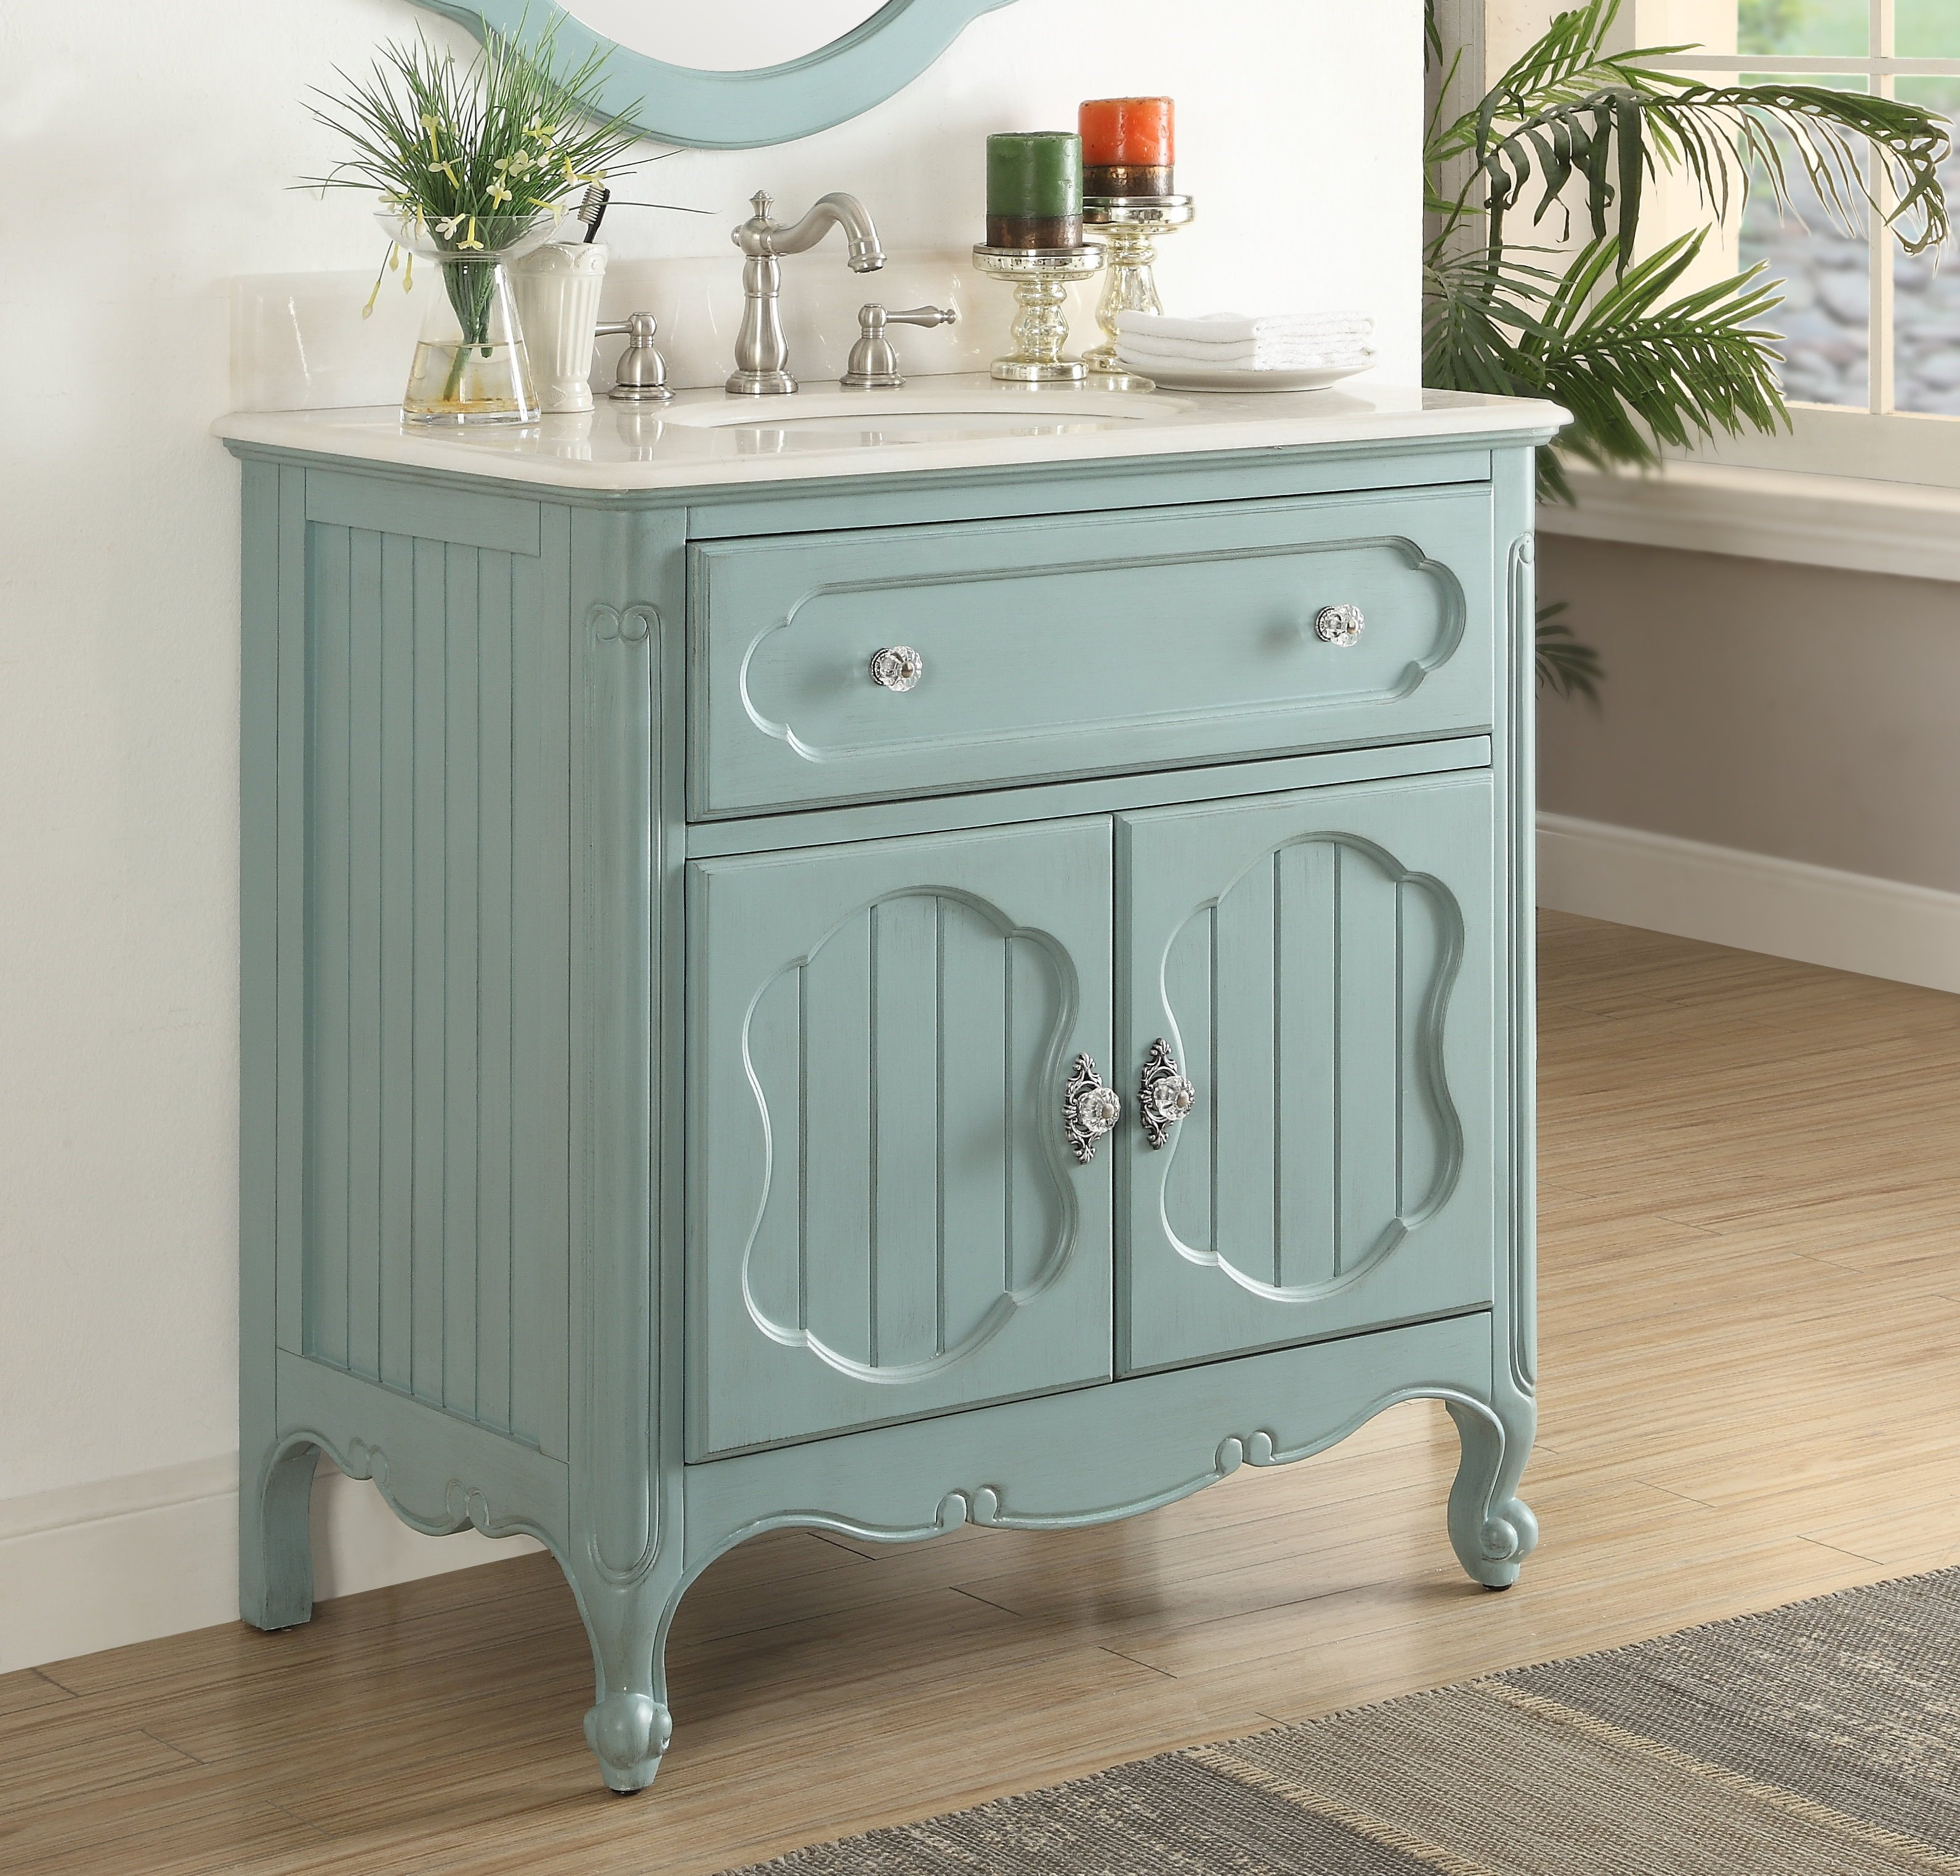 Chans Furniture Zk 1533bu 34 34 Inch Benton Collection Victorian Cottage Style Knoxville Bathroom Sink Vanity